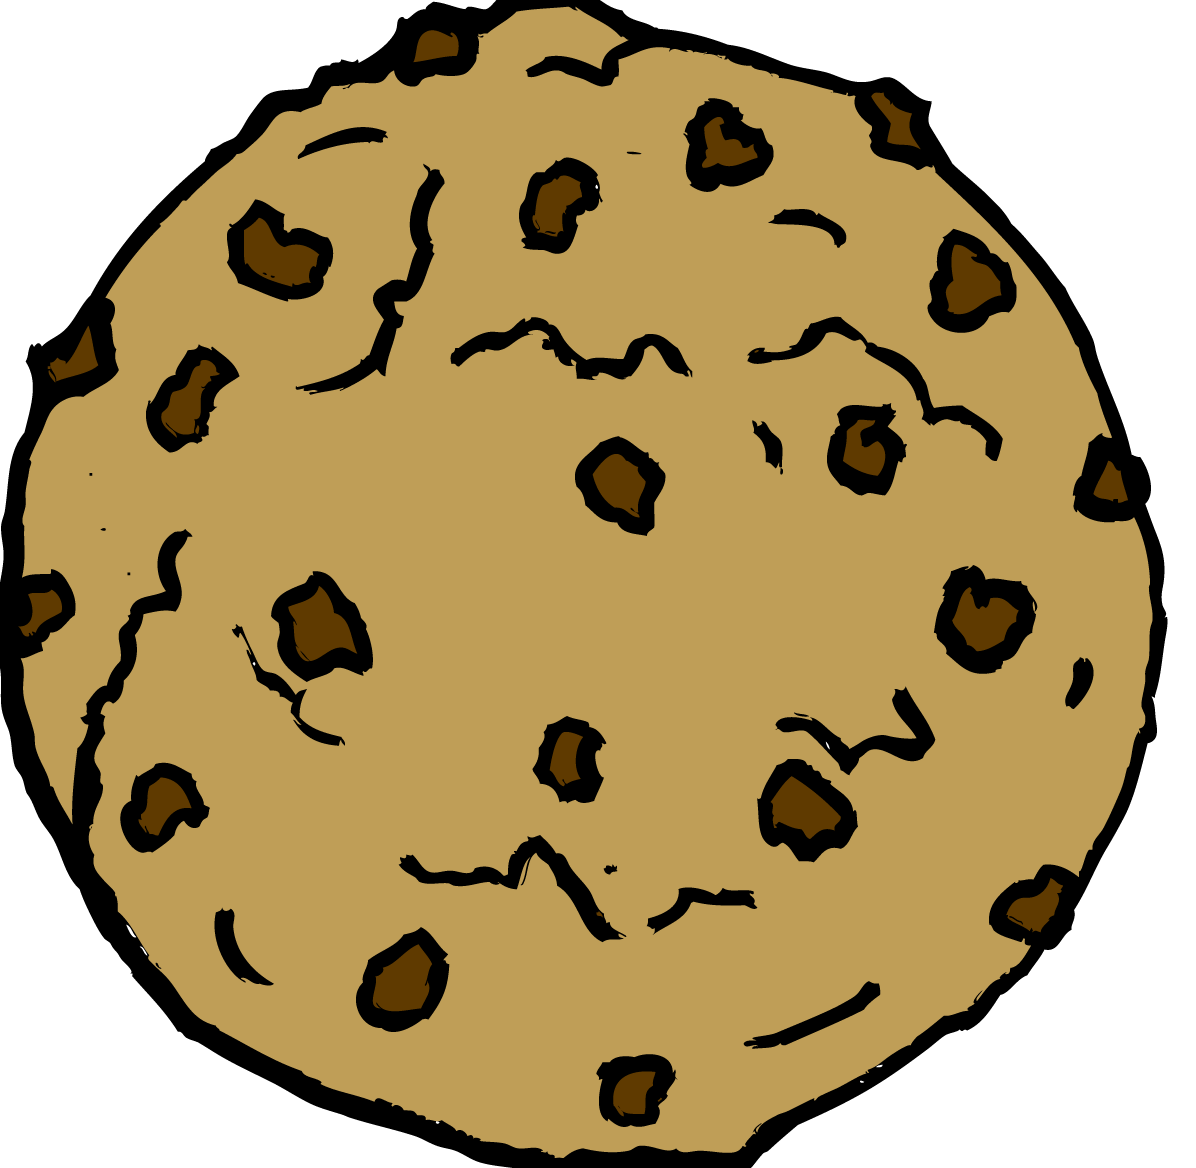 Chocolate chip clip art. Brownie clipart cookie brownie